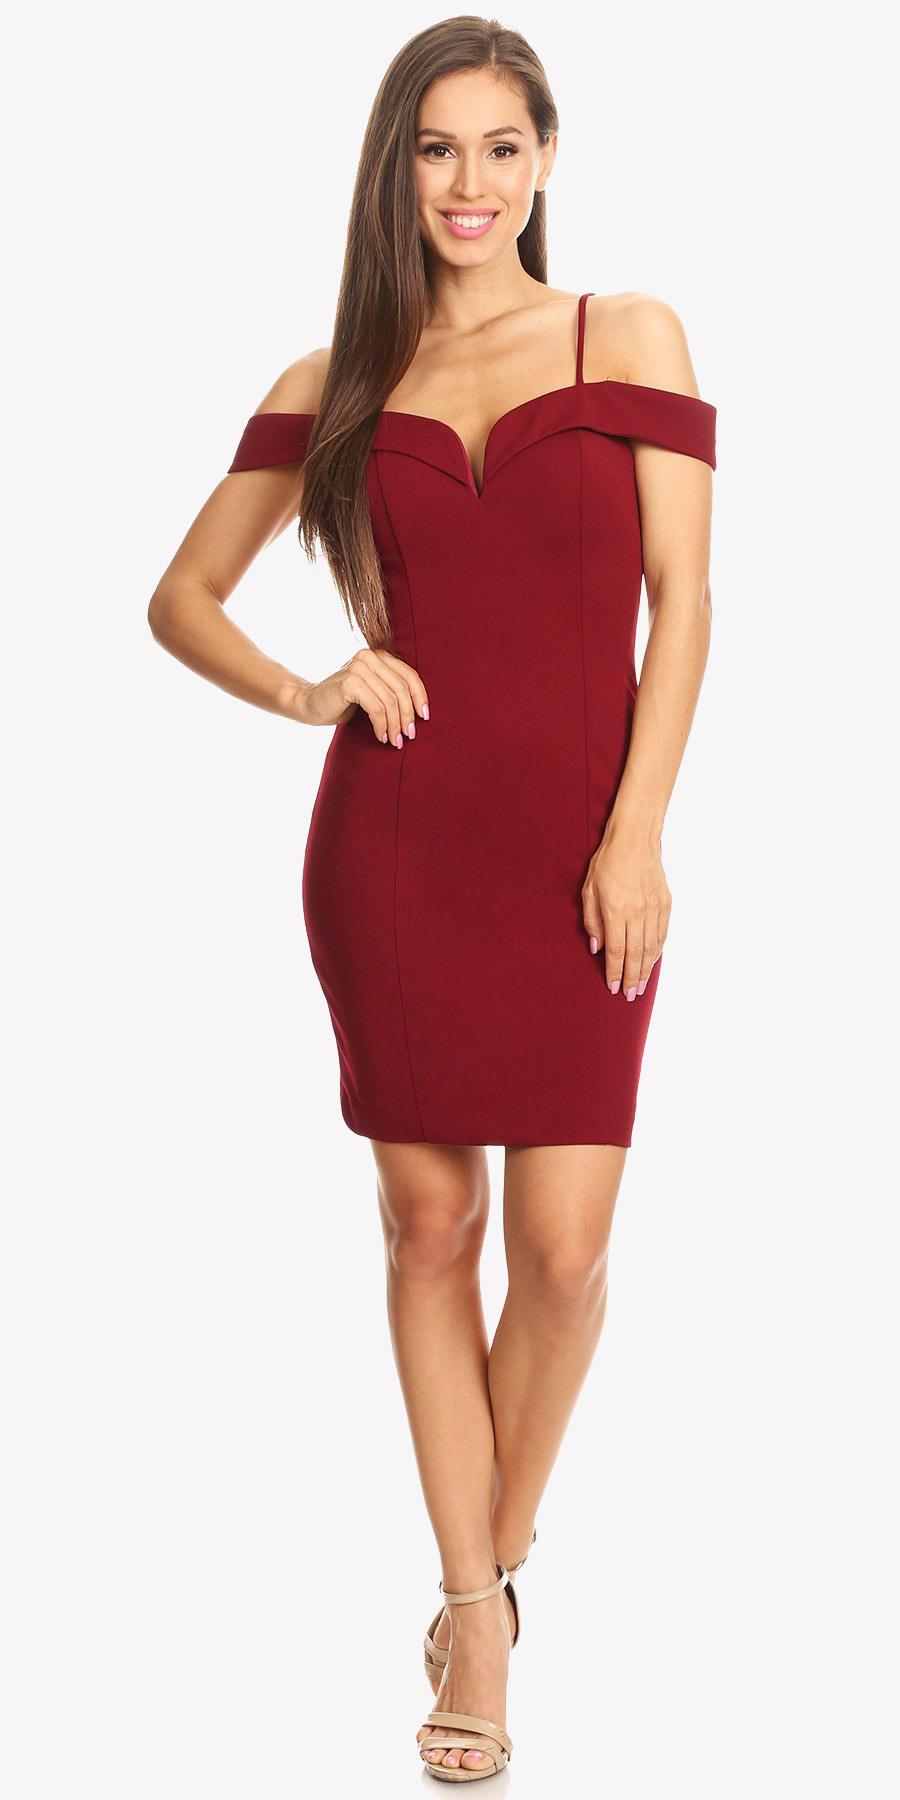 90edebedc1627 Sweetheart Cocktail Dress – Fashion dresses